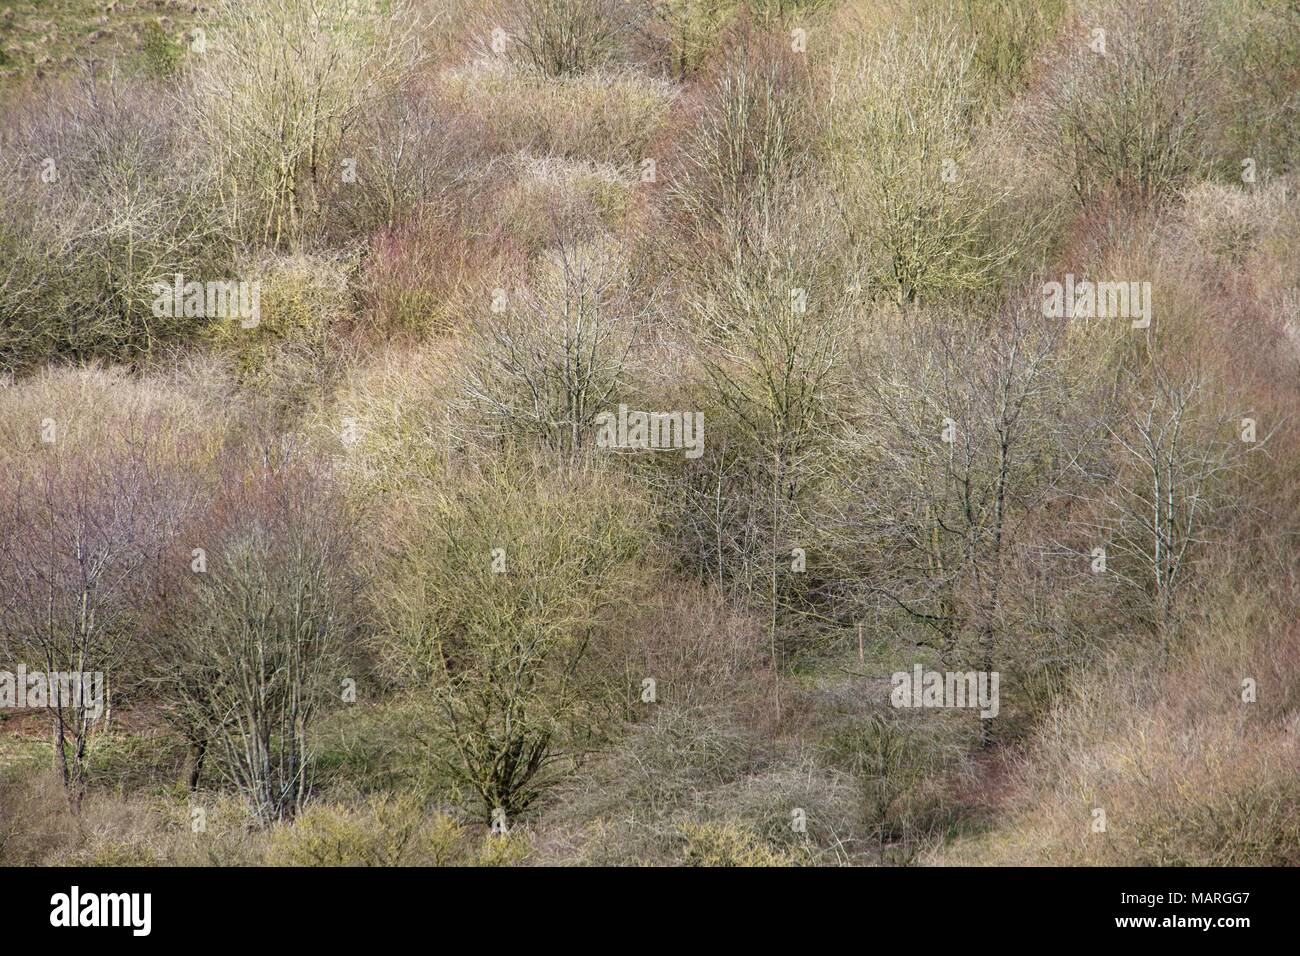 A view of a young wood in early spring with the trees just starting to sprout giving a range of subtle colours. - Stock Image